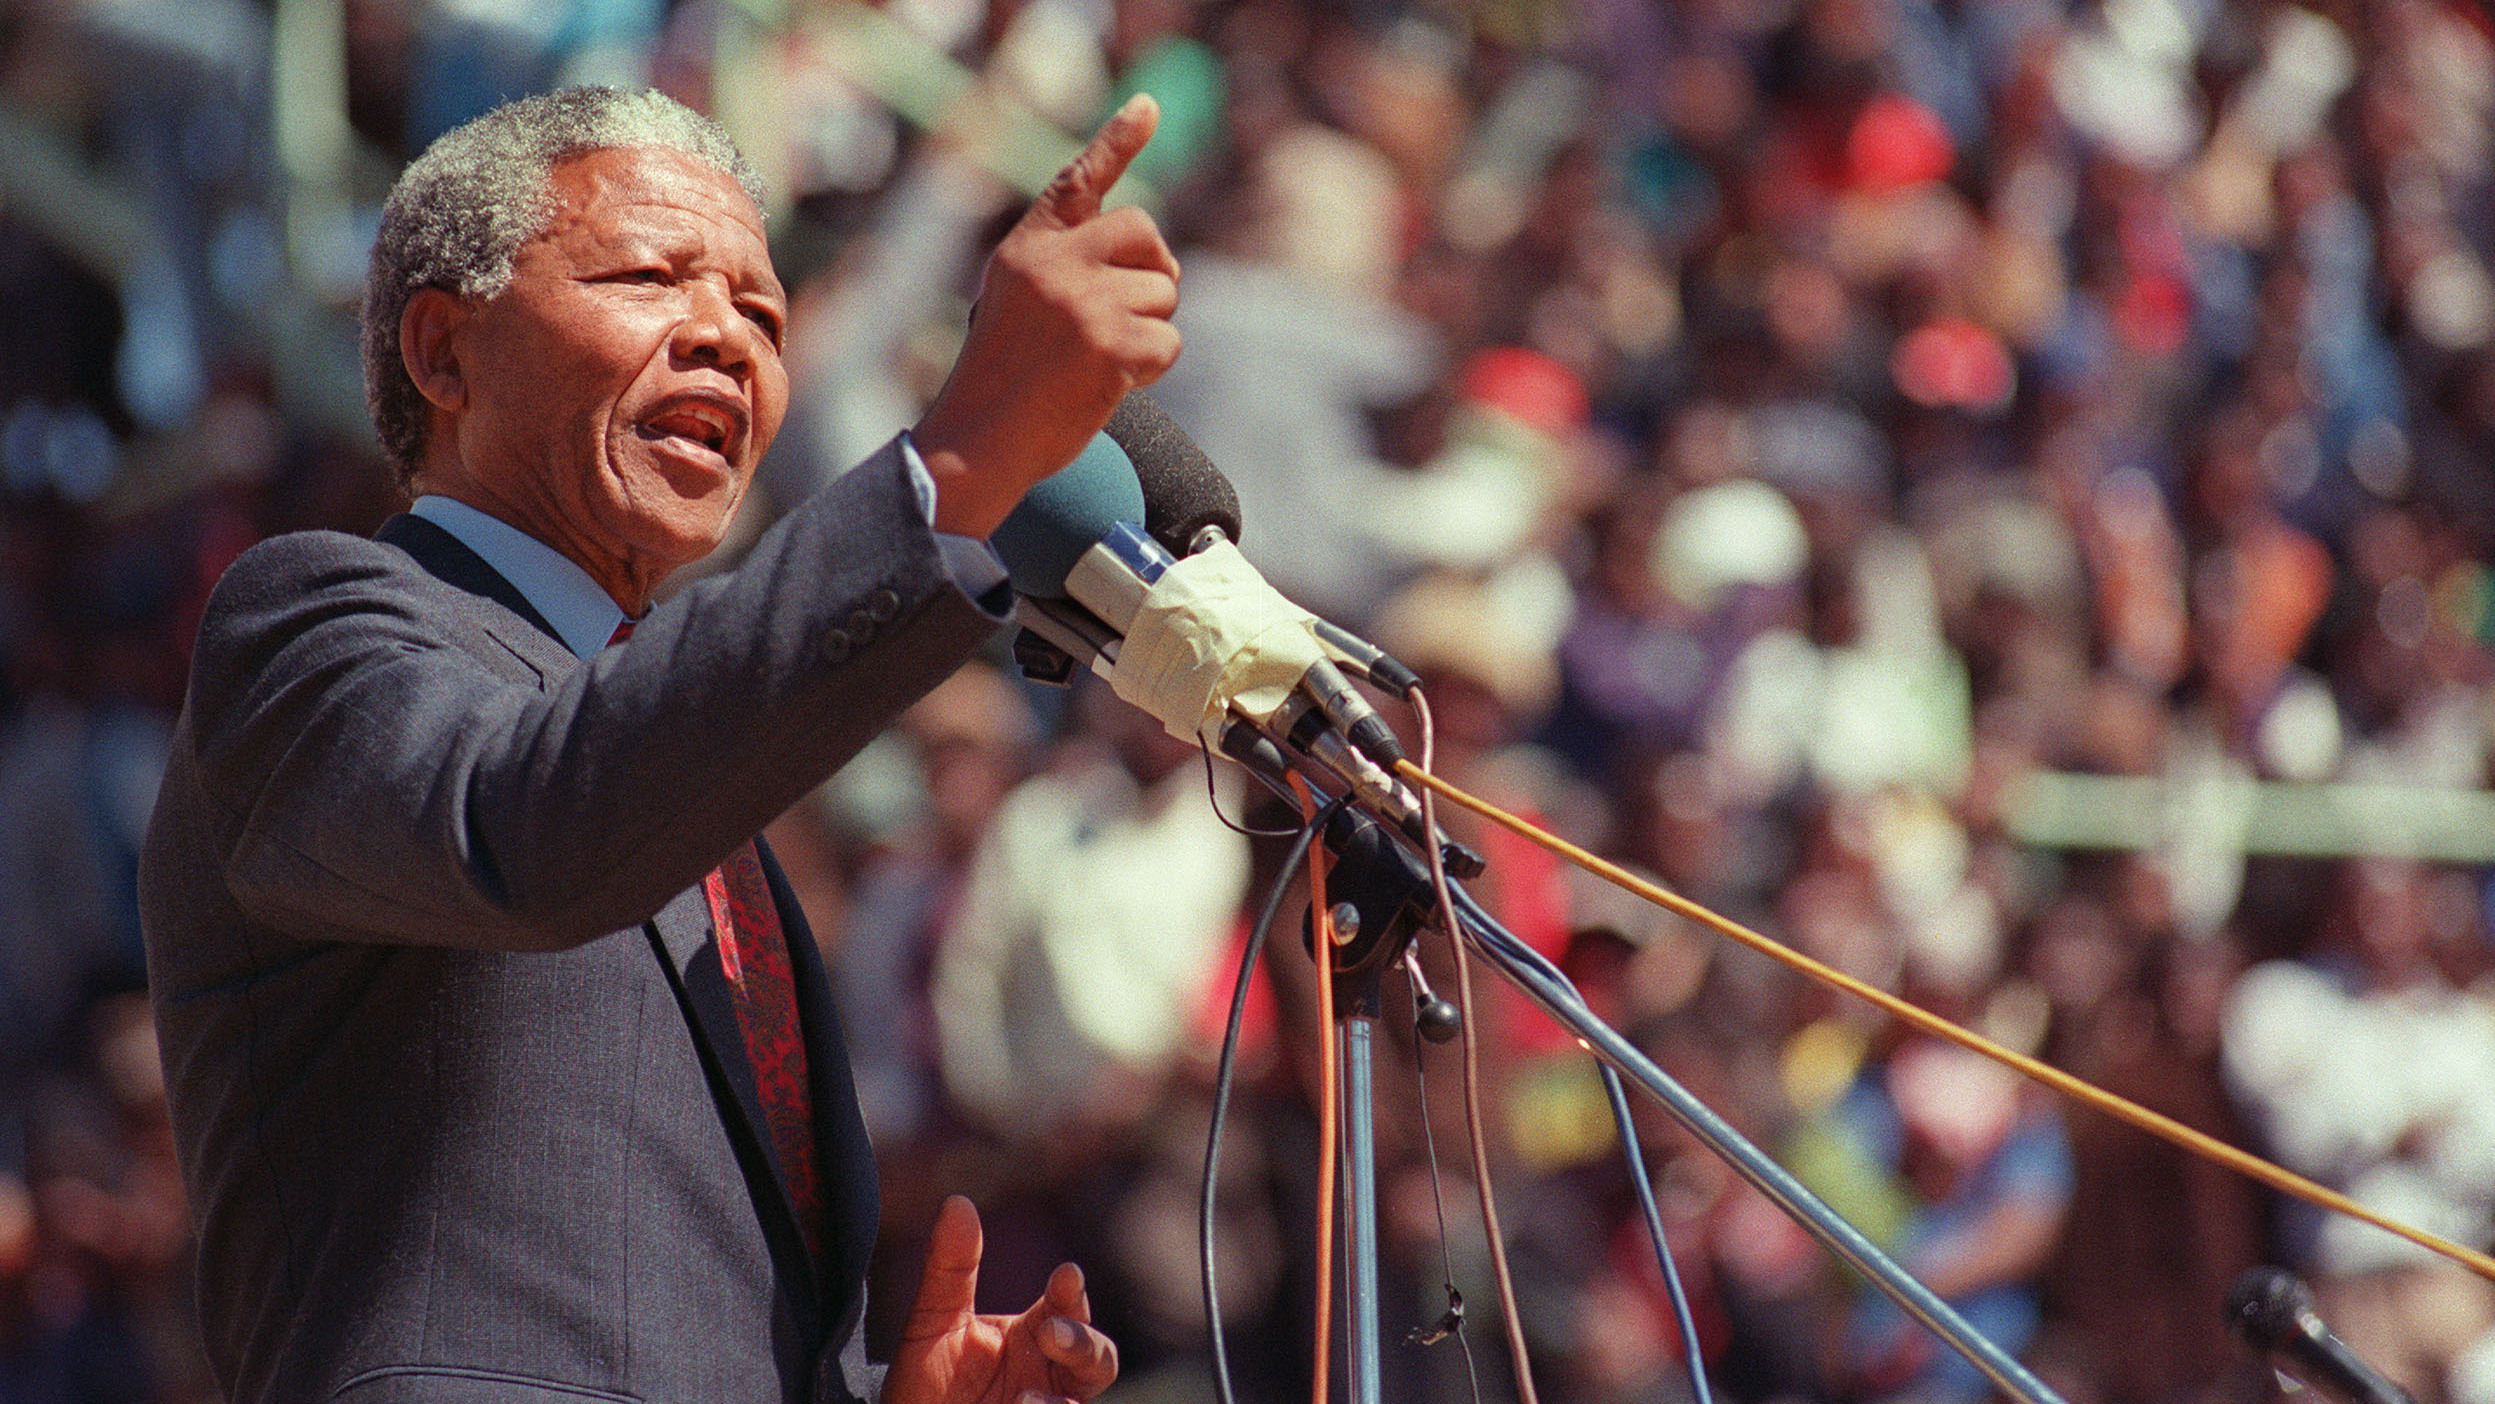 The Mandela Playlist: A Life And Legacy, Told In Music